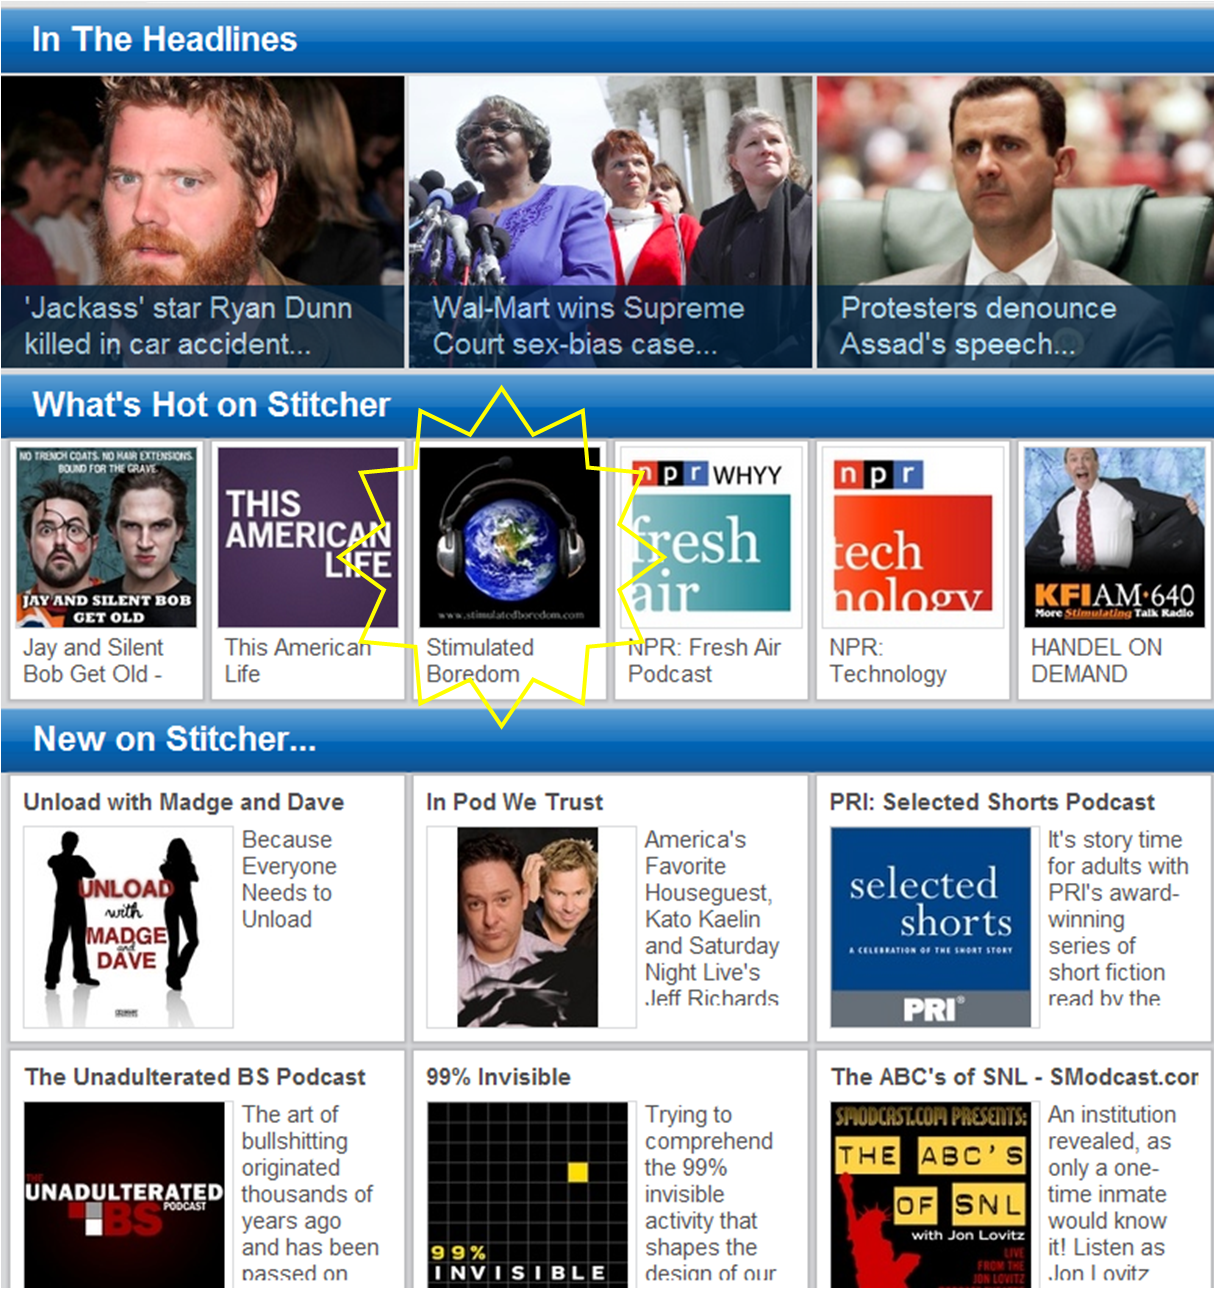 What's HOT on Stitcher